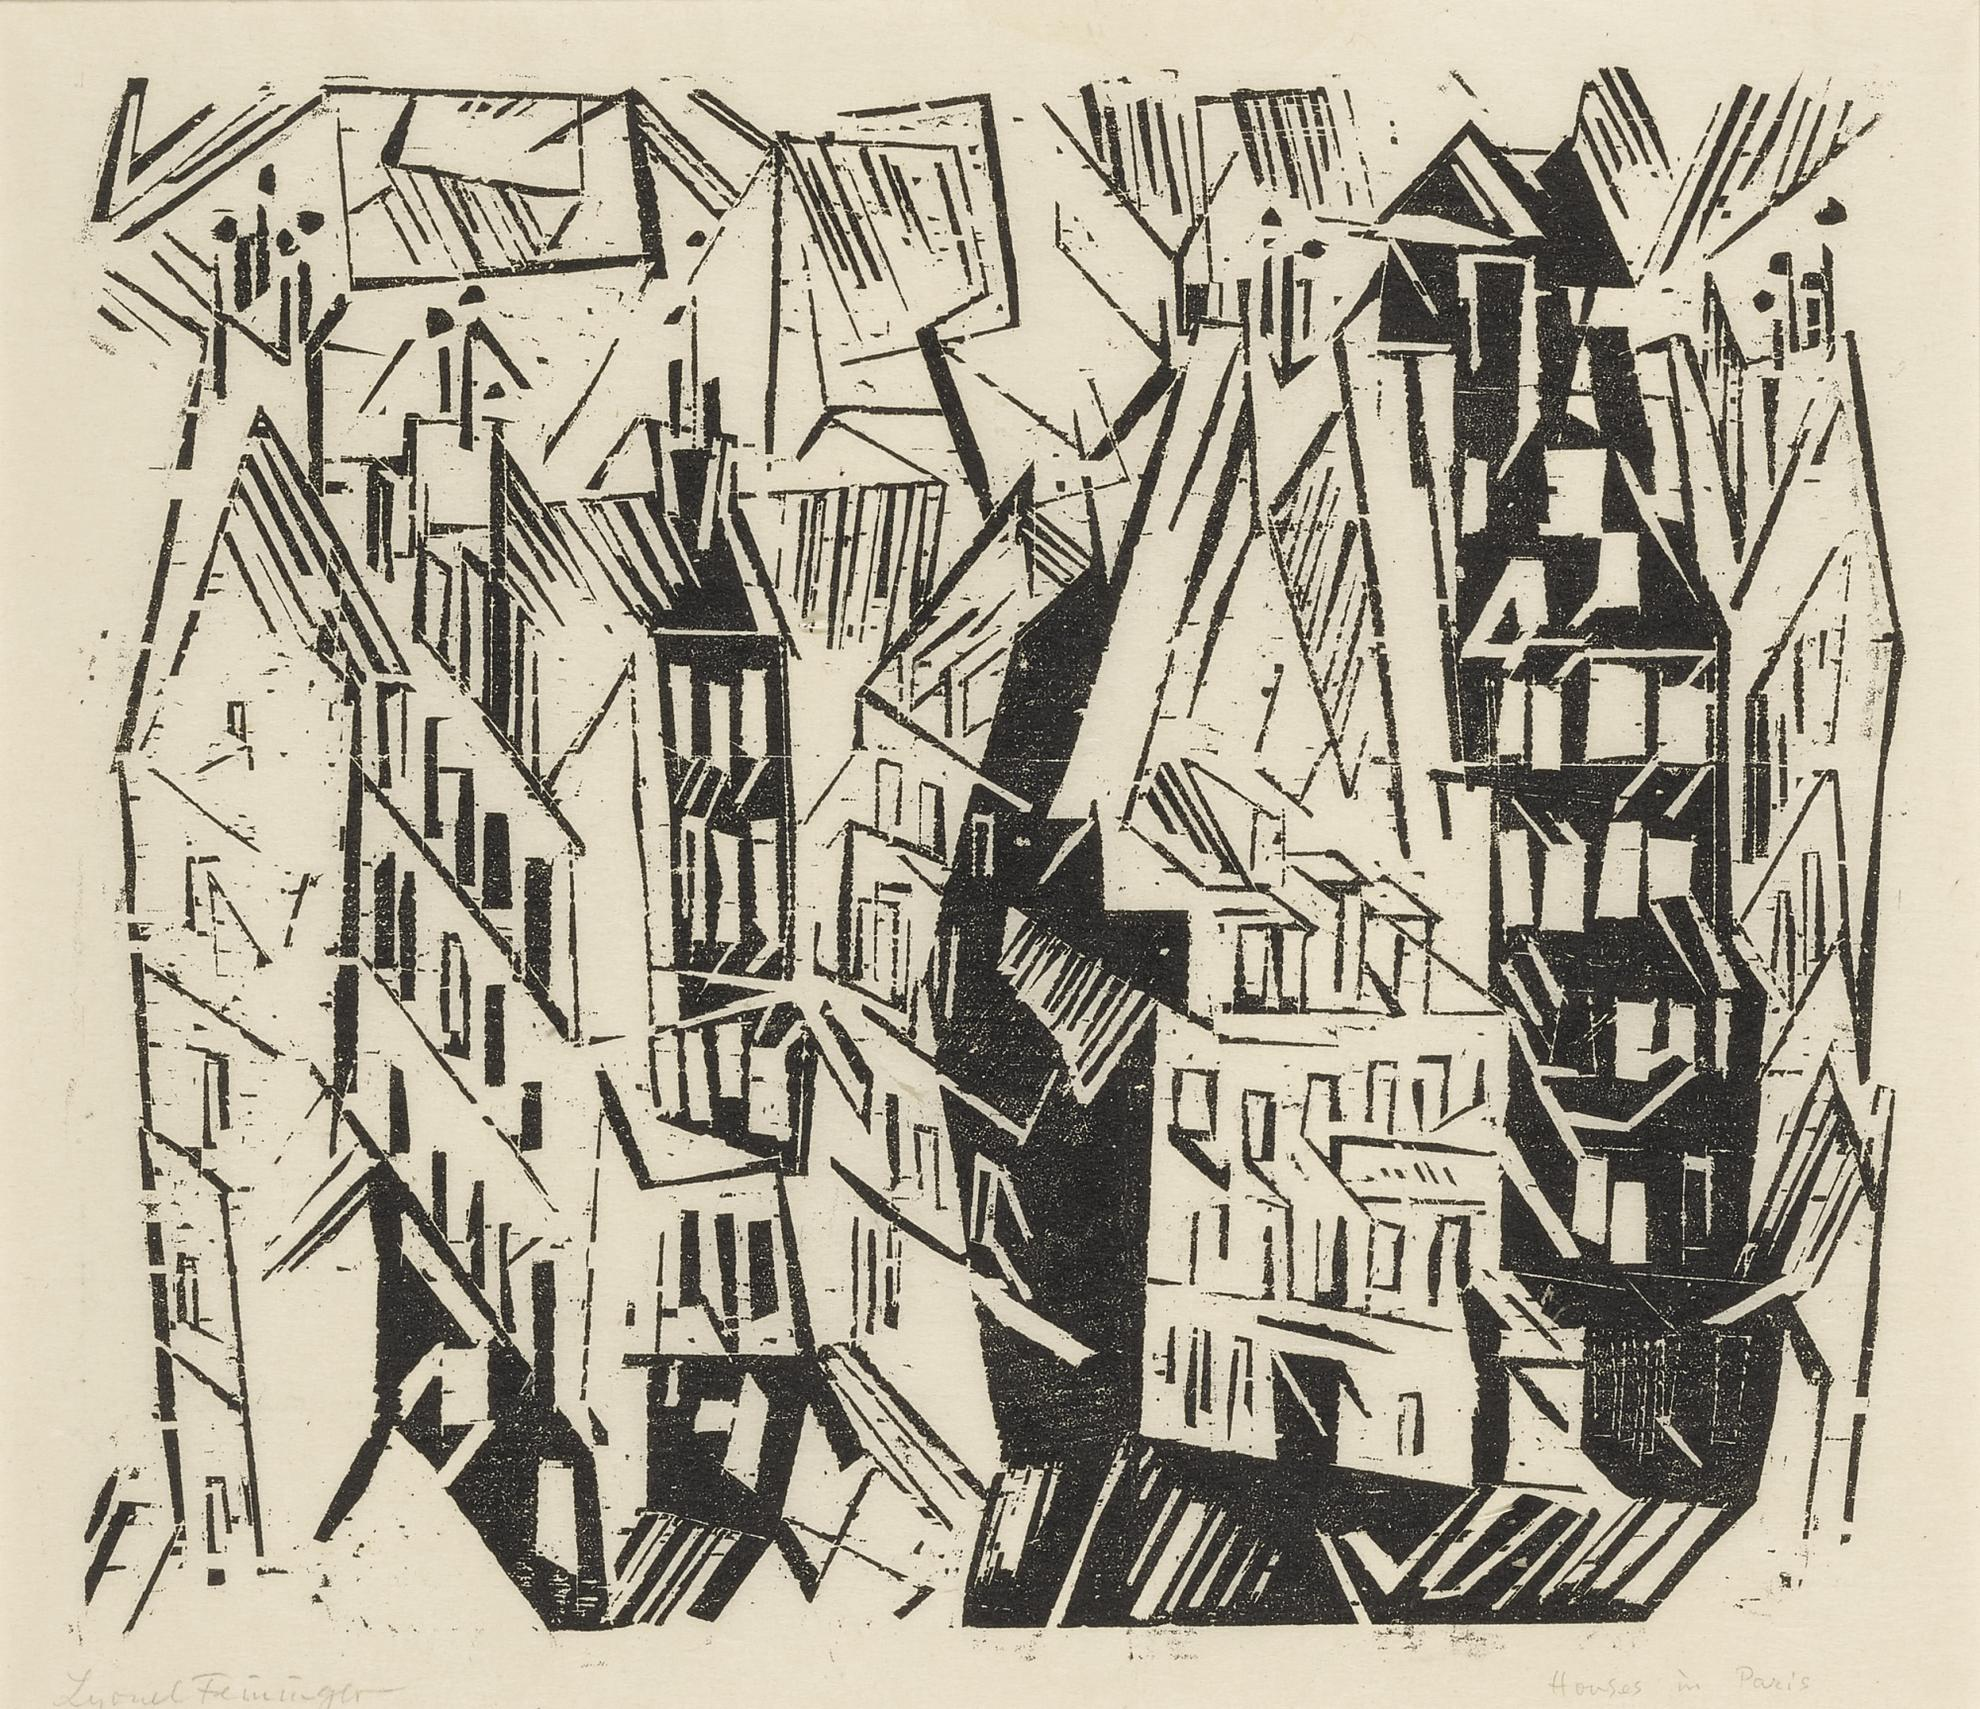 Lyonel Feininger-Pariser Hauser (Houses In Paris); And Four Woodcuts (Prasse W 18, W 59, W 76, W 128, W 135); together with Kirche und Dorf; Waldkirche, 1; Marine; and Angler und Schiffe-1918